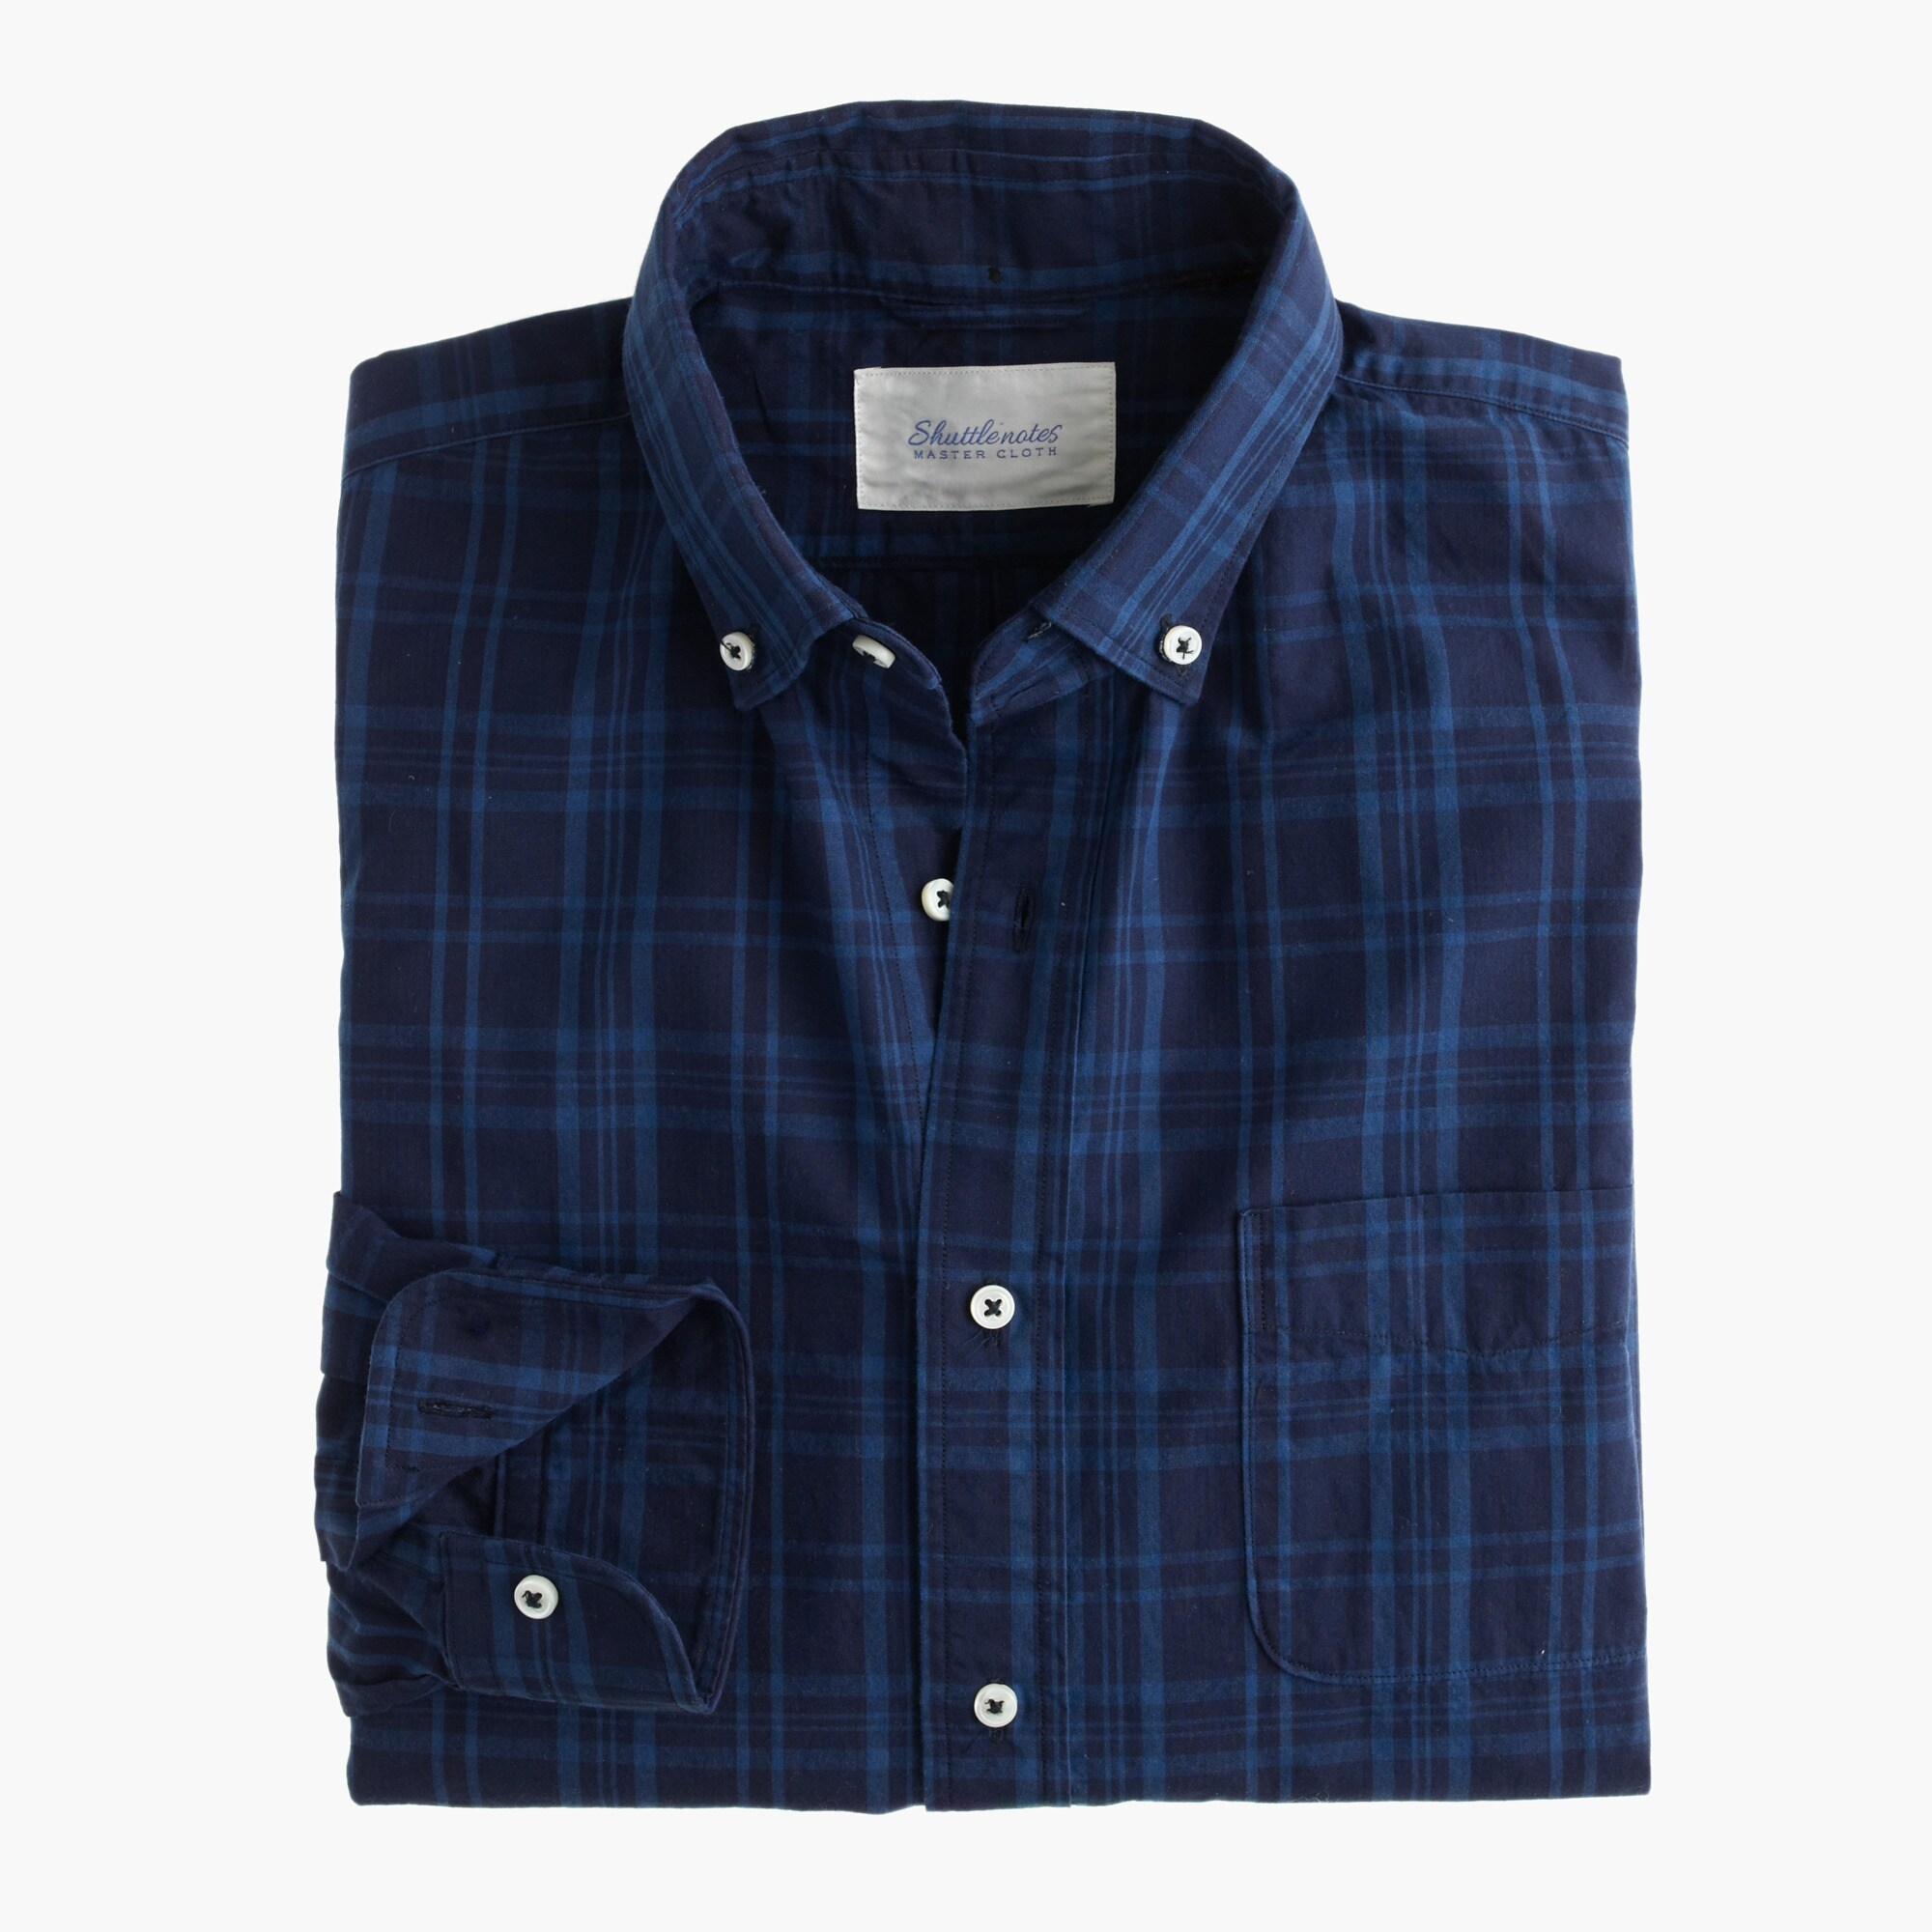 shuttle notes indigo poplin shirt : men's shirts